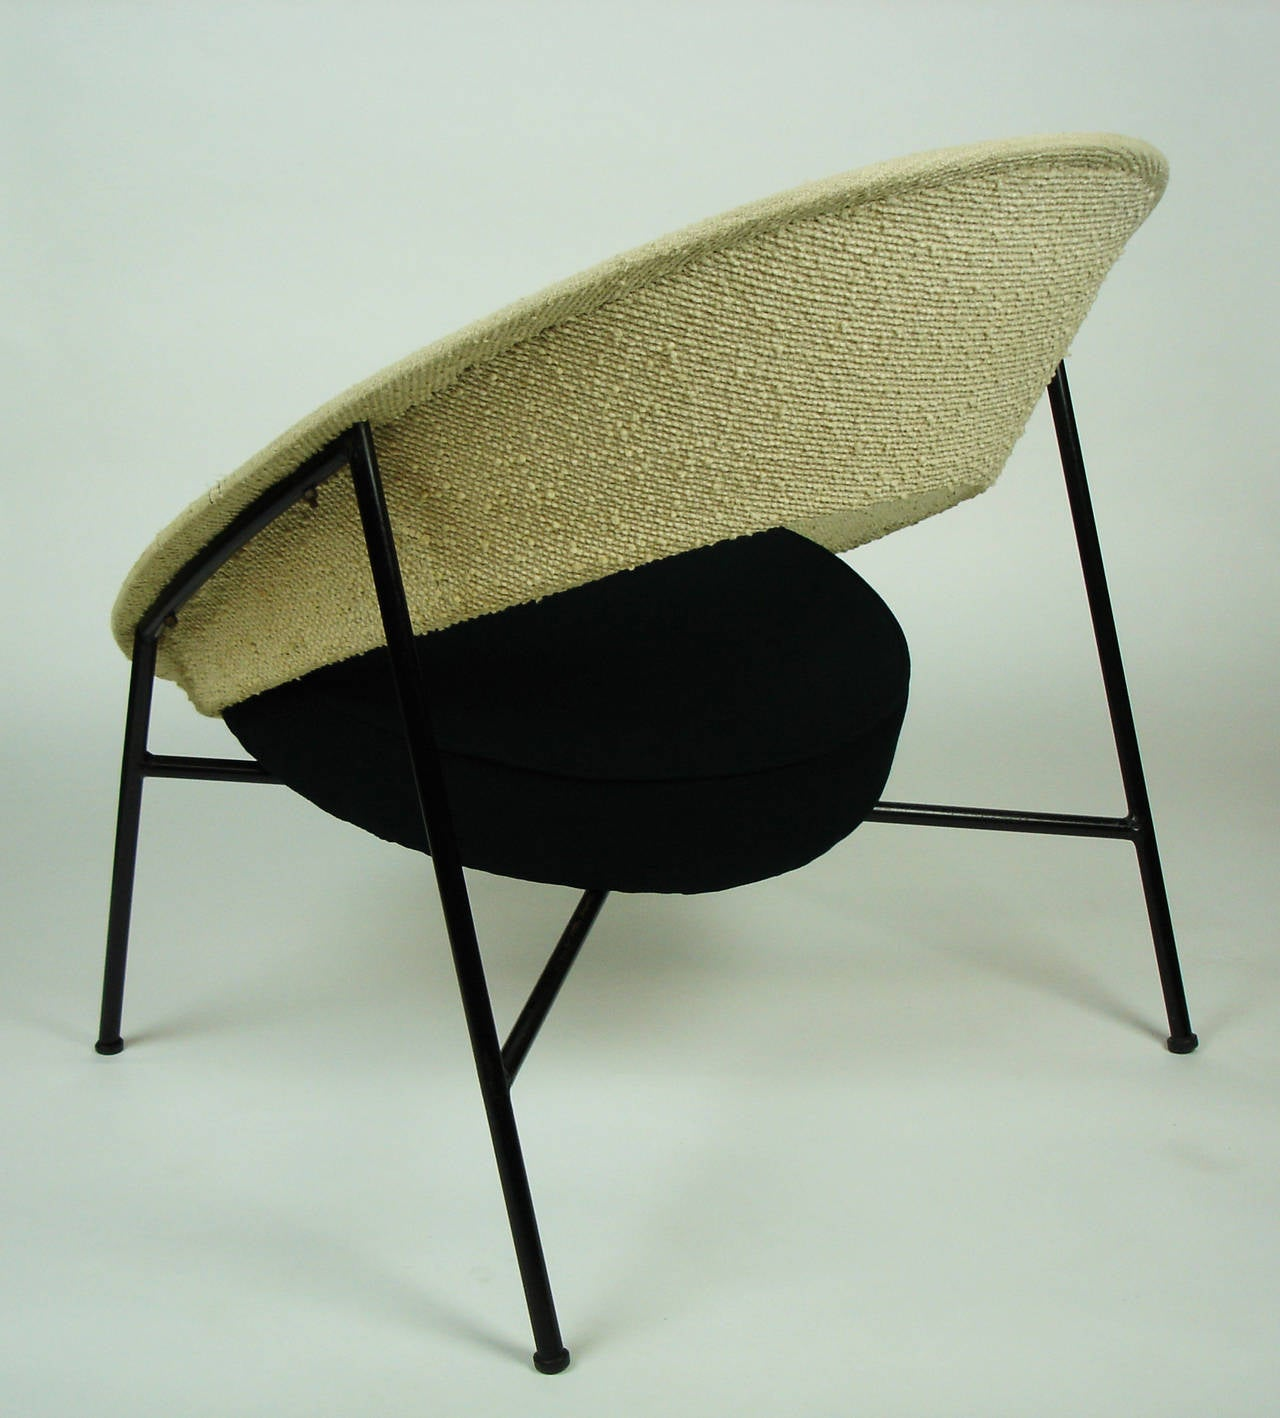 saturne armchair by genevi ve dangles and christian defrance at 1stdibs. Black Bedroom Furniture Sets. Home Design Ideas